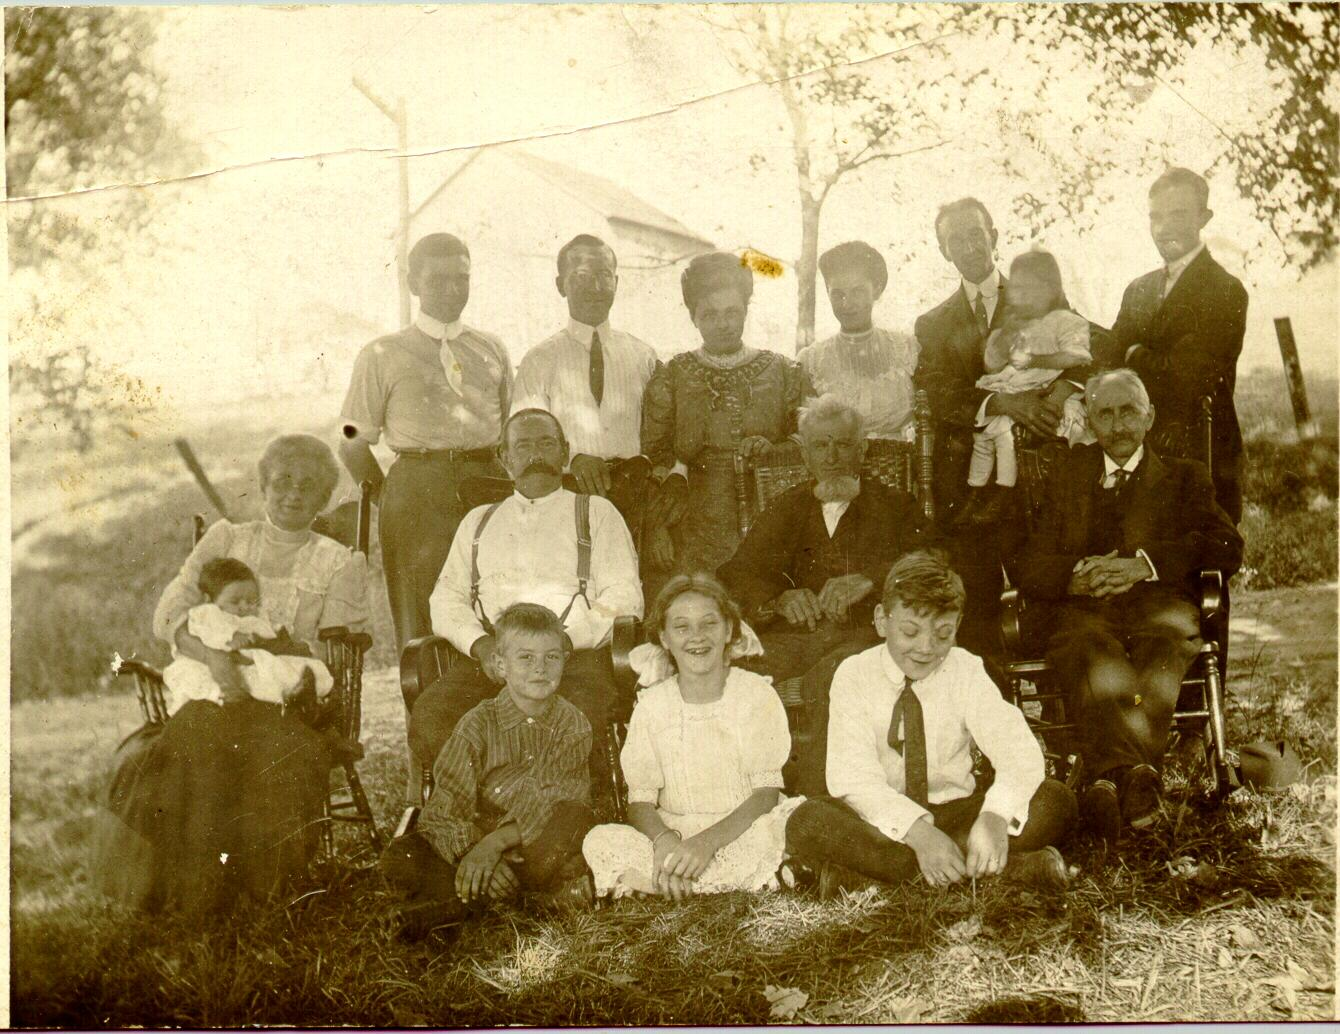 Allen/Beckwith/Lawson/Burdick Reunion about 1912